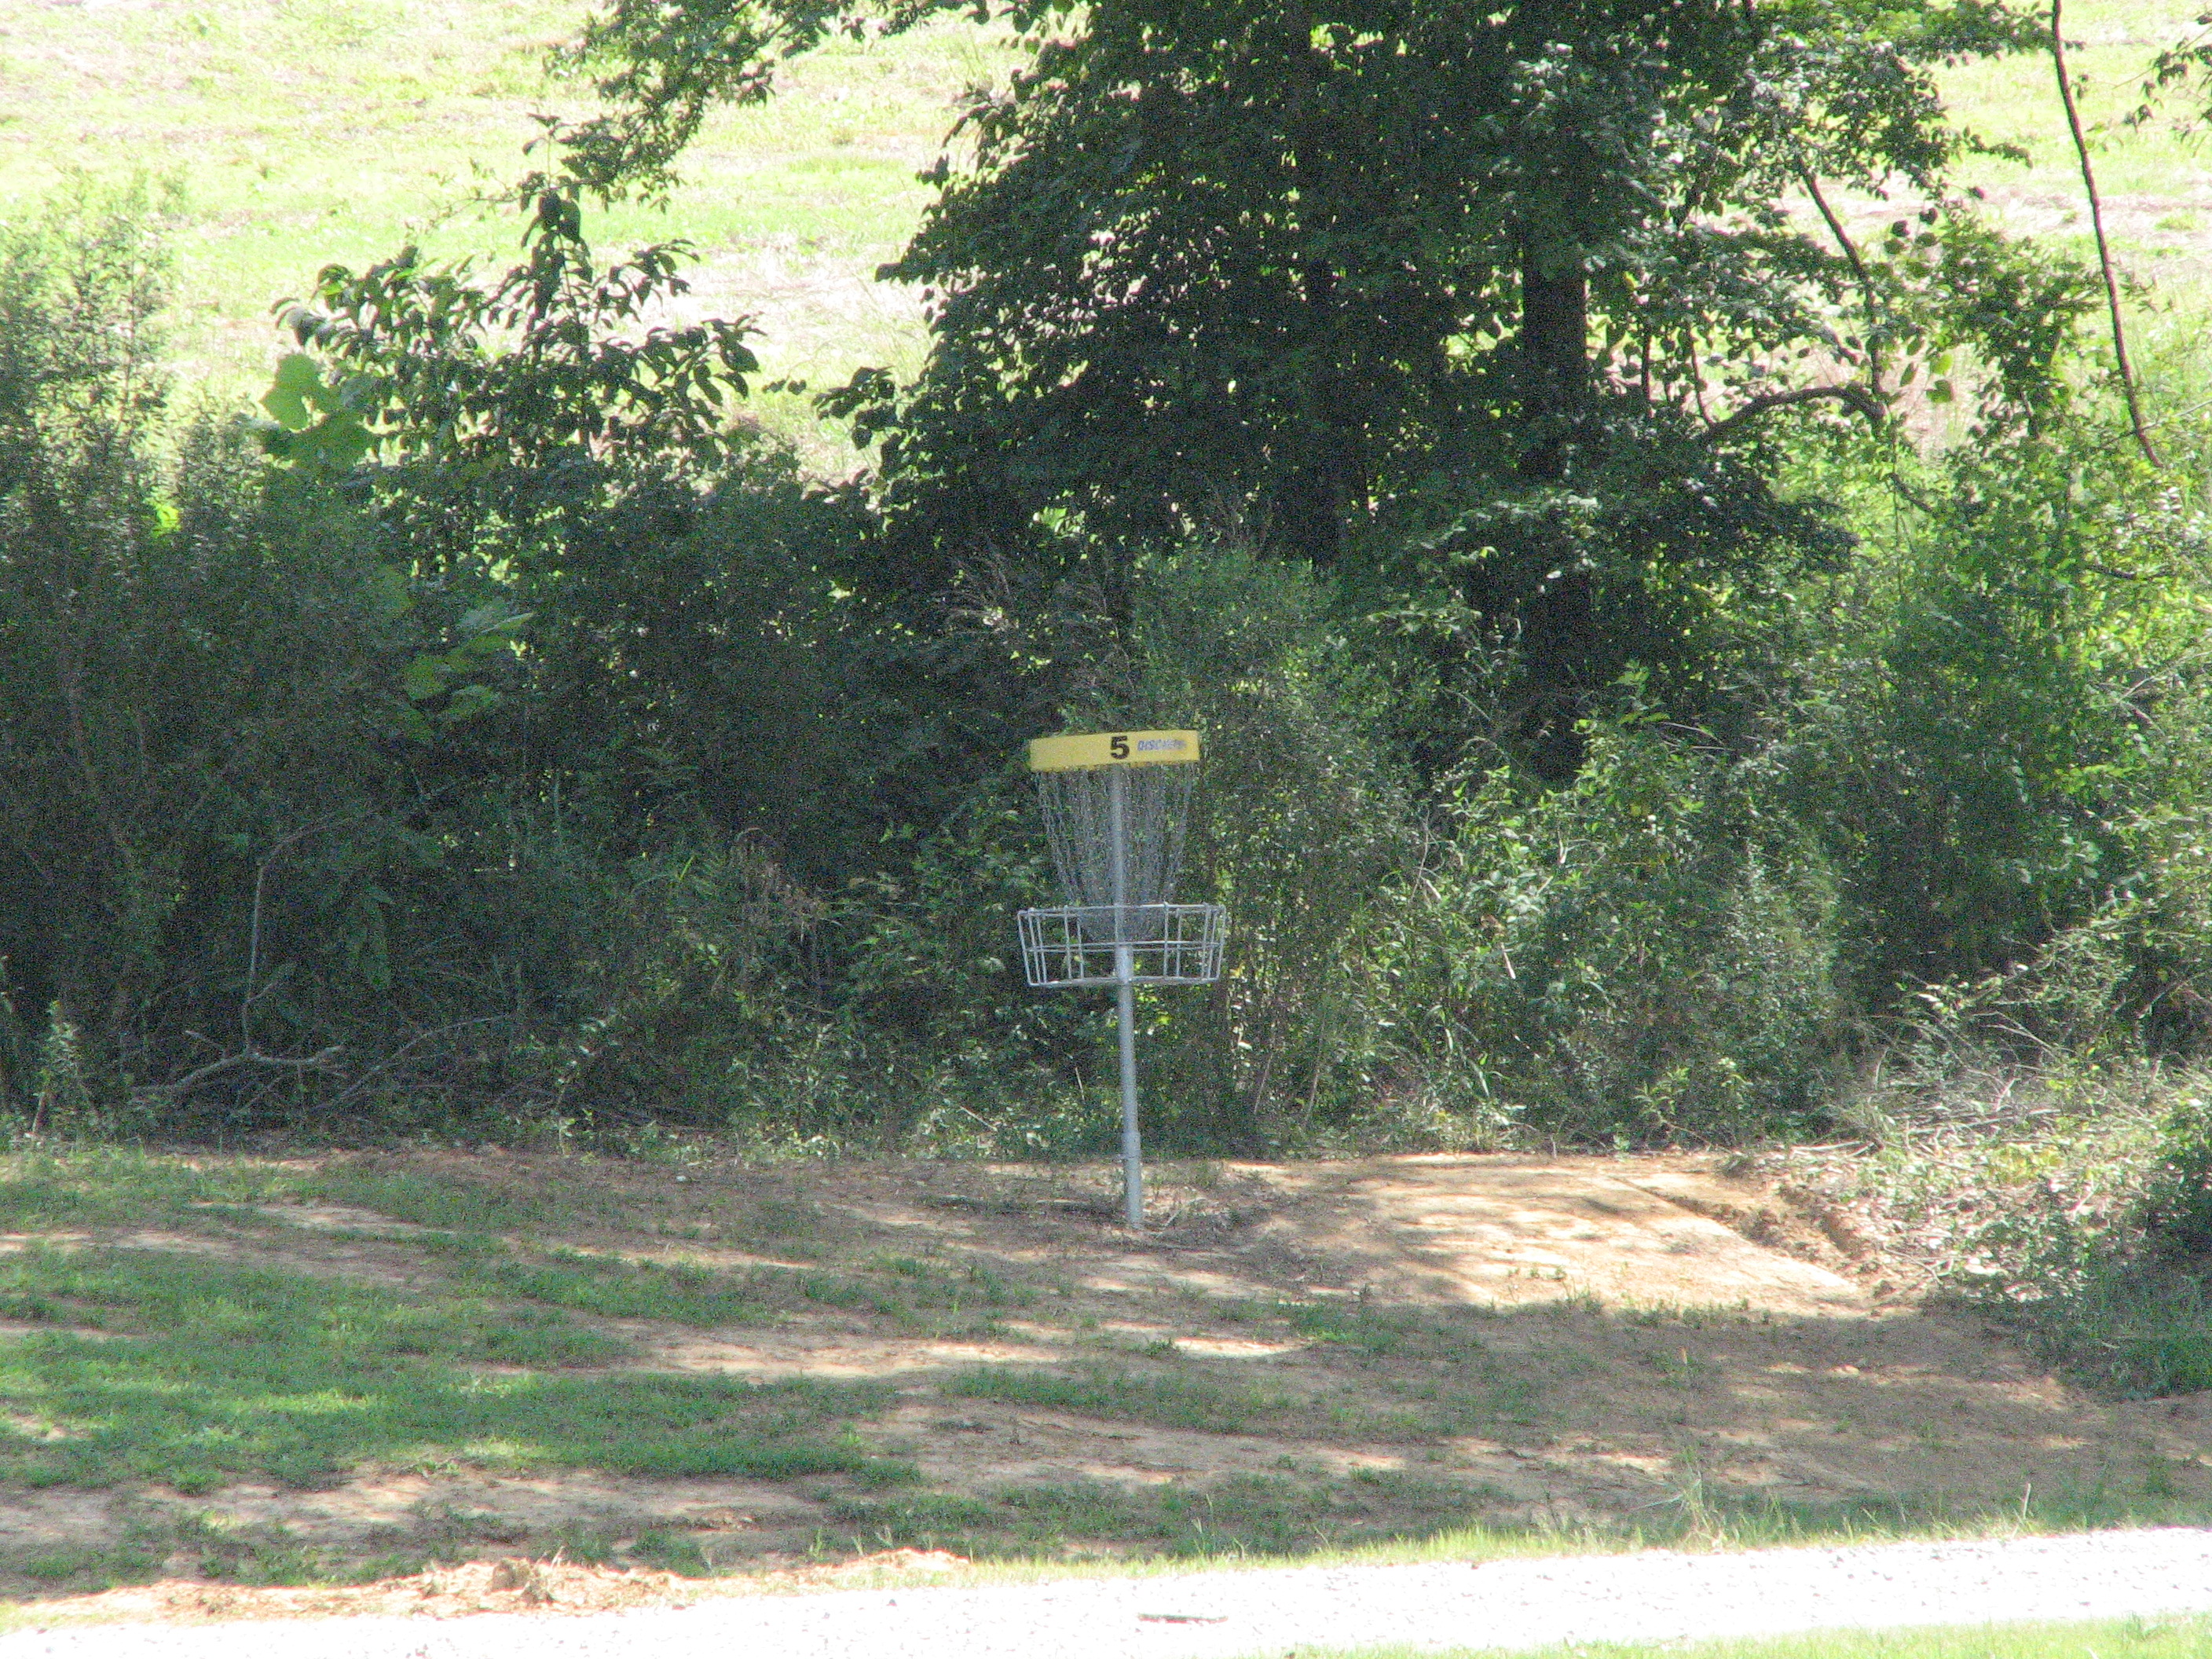 Brighton Park Disc Golf